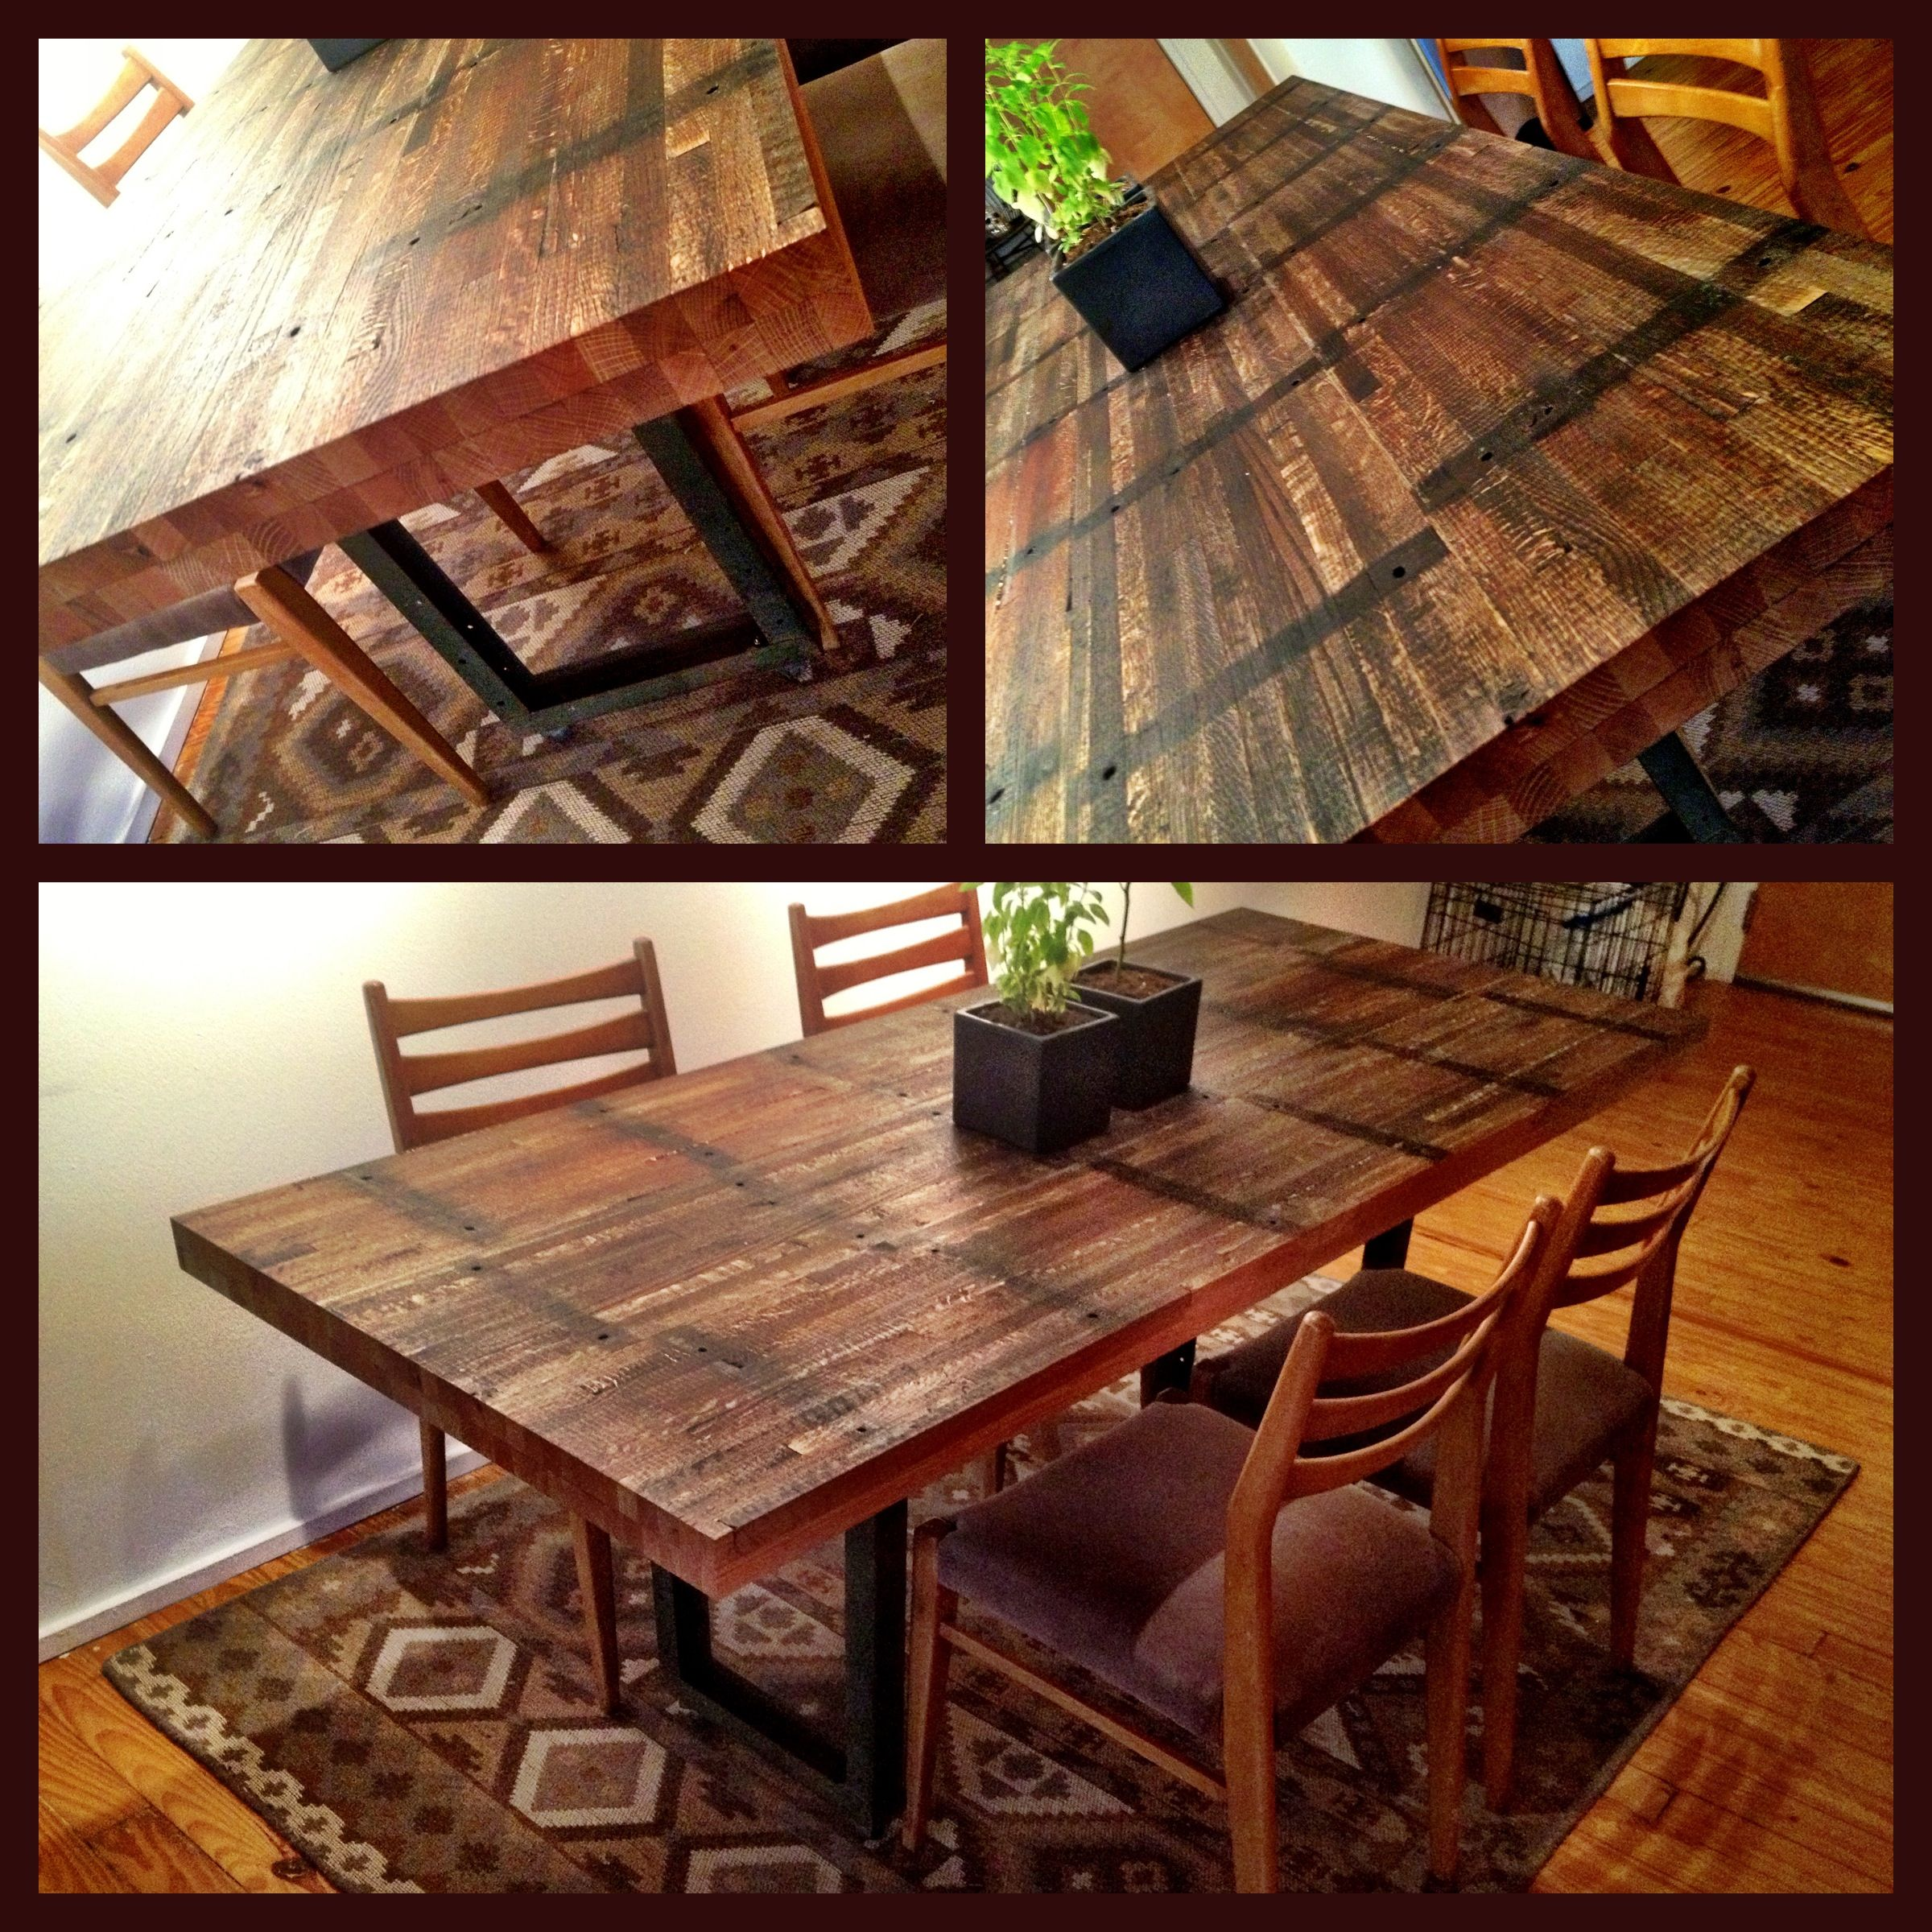 Custom Dining Table   Reclaimed Wood With Metal Legs On Wheels. Family  Style. Designed